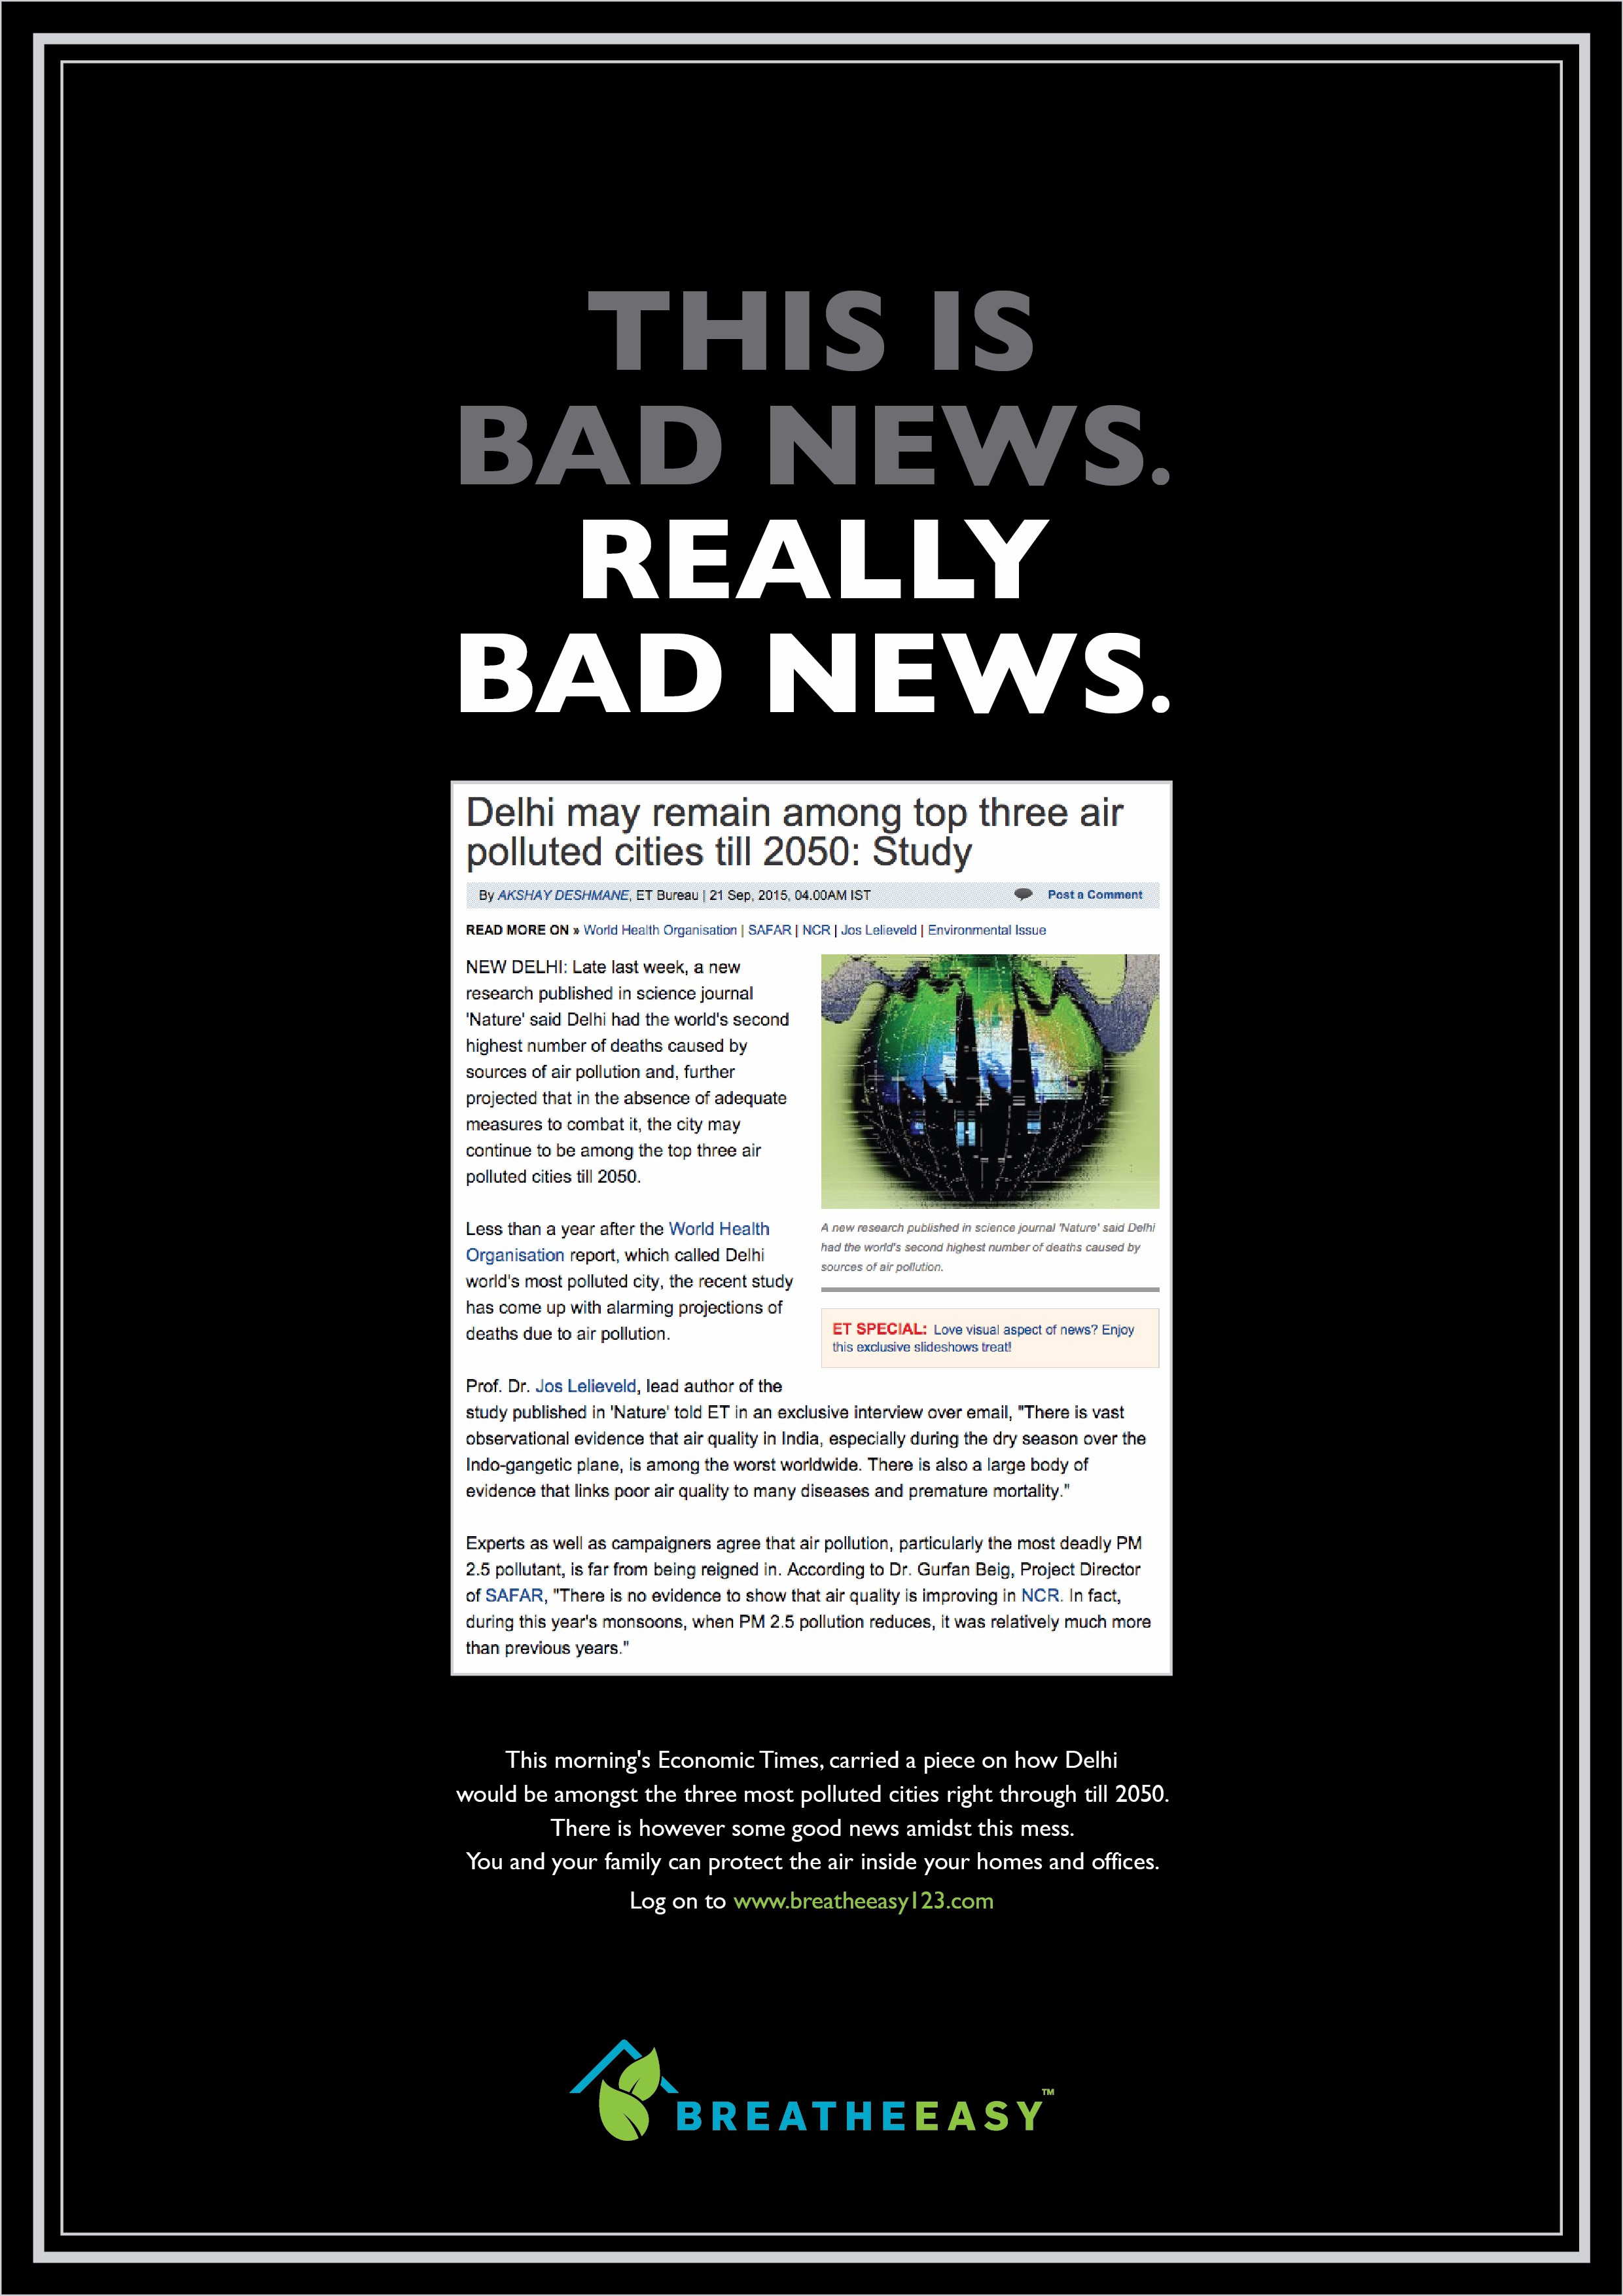 THIS_IS_BAD_NEWS._REALLY_BAD_NEWS-01